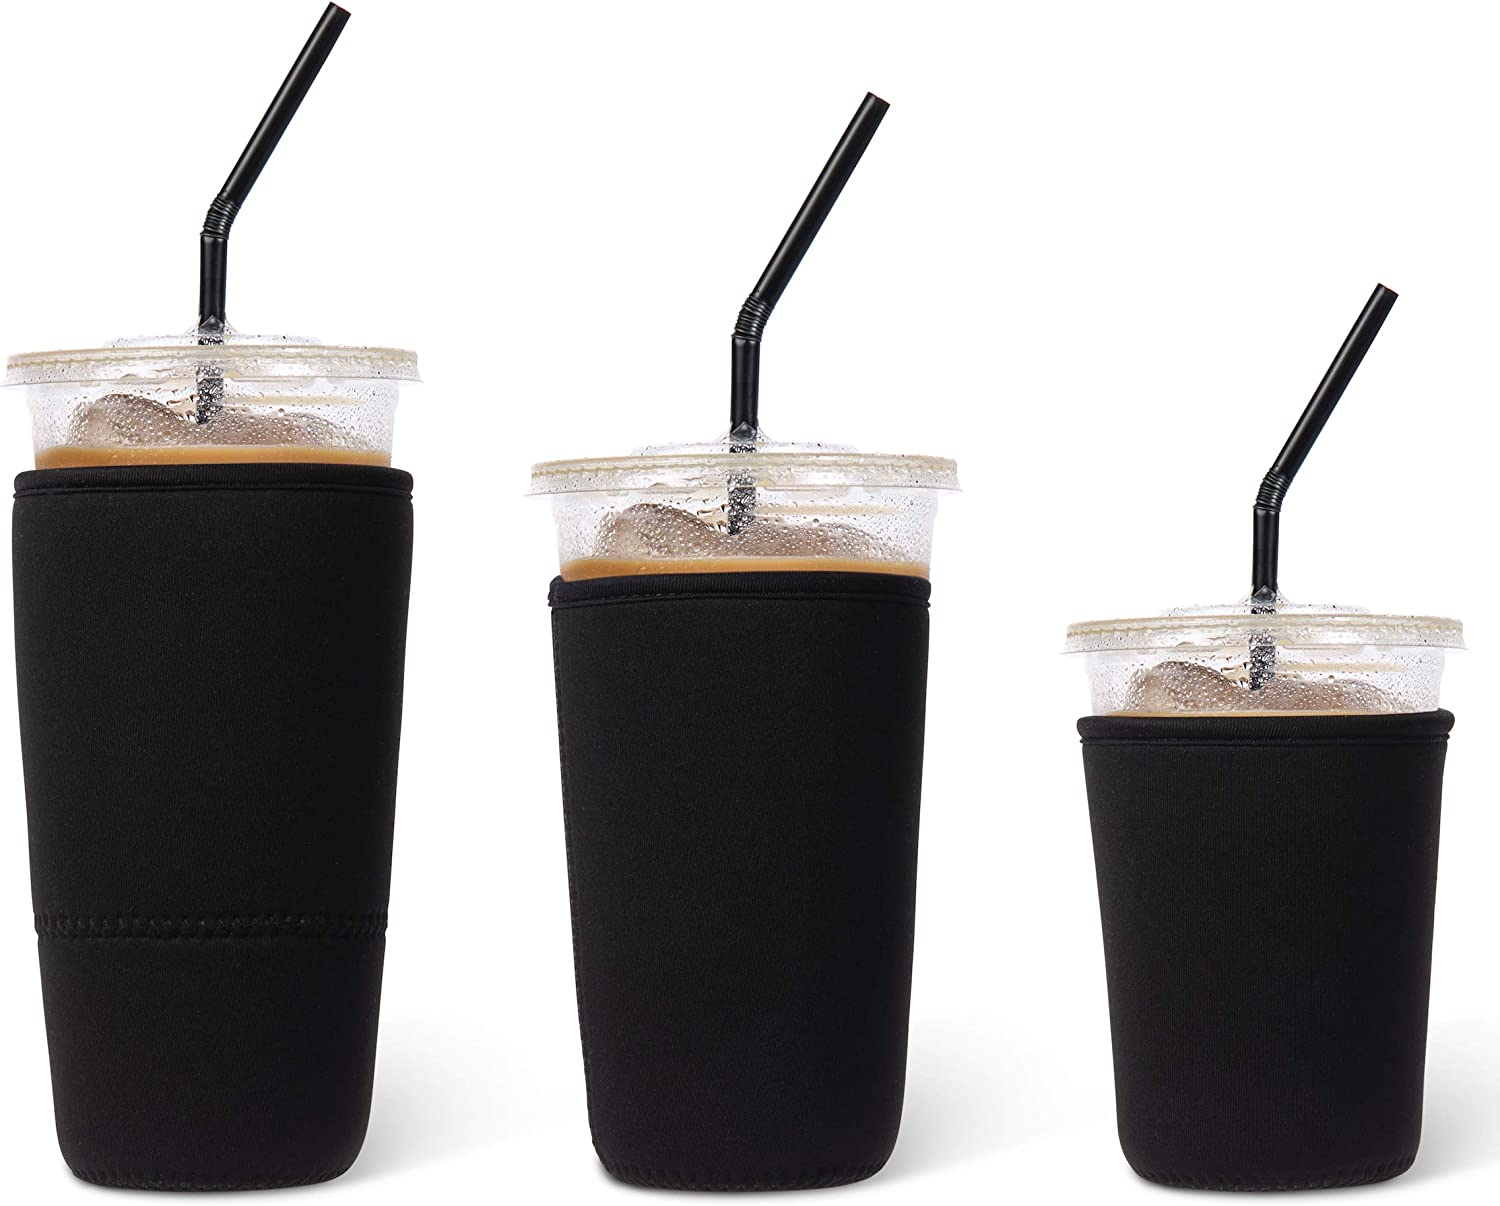 Iced Coffee Cup Sleeve [3 Pack]   Reusable Neoprene Insulator for Cold Beverages   Cold Drink Cup Holder for Starbucks, McDonalds, Dunkin, Smoothies, Fountain Drinks   Black, Set of S/M/L